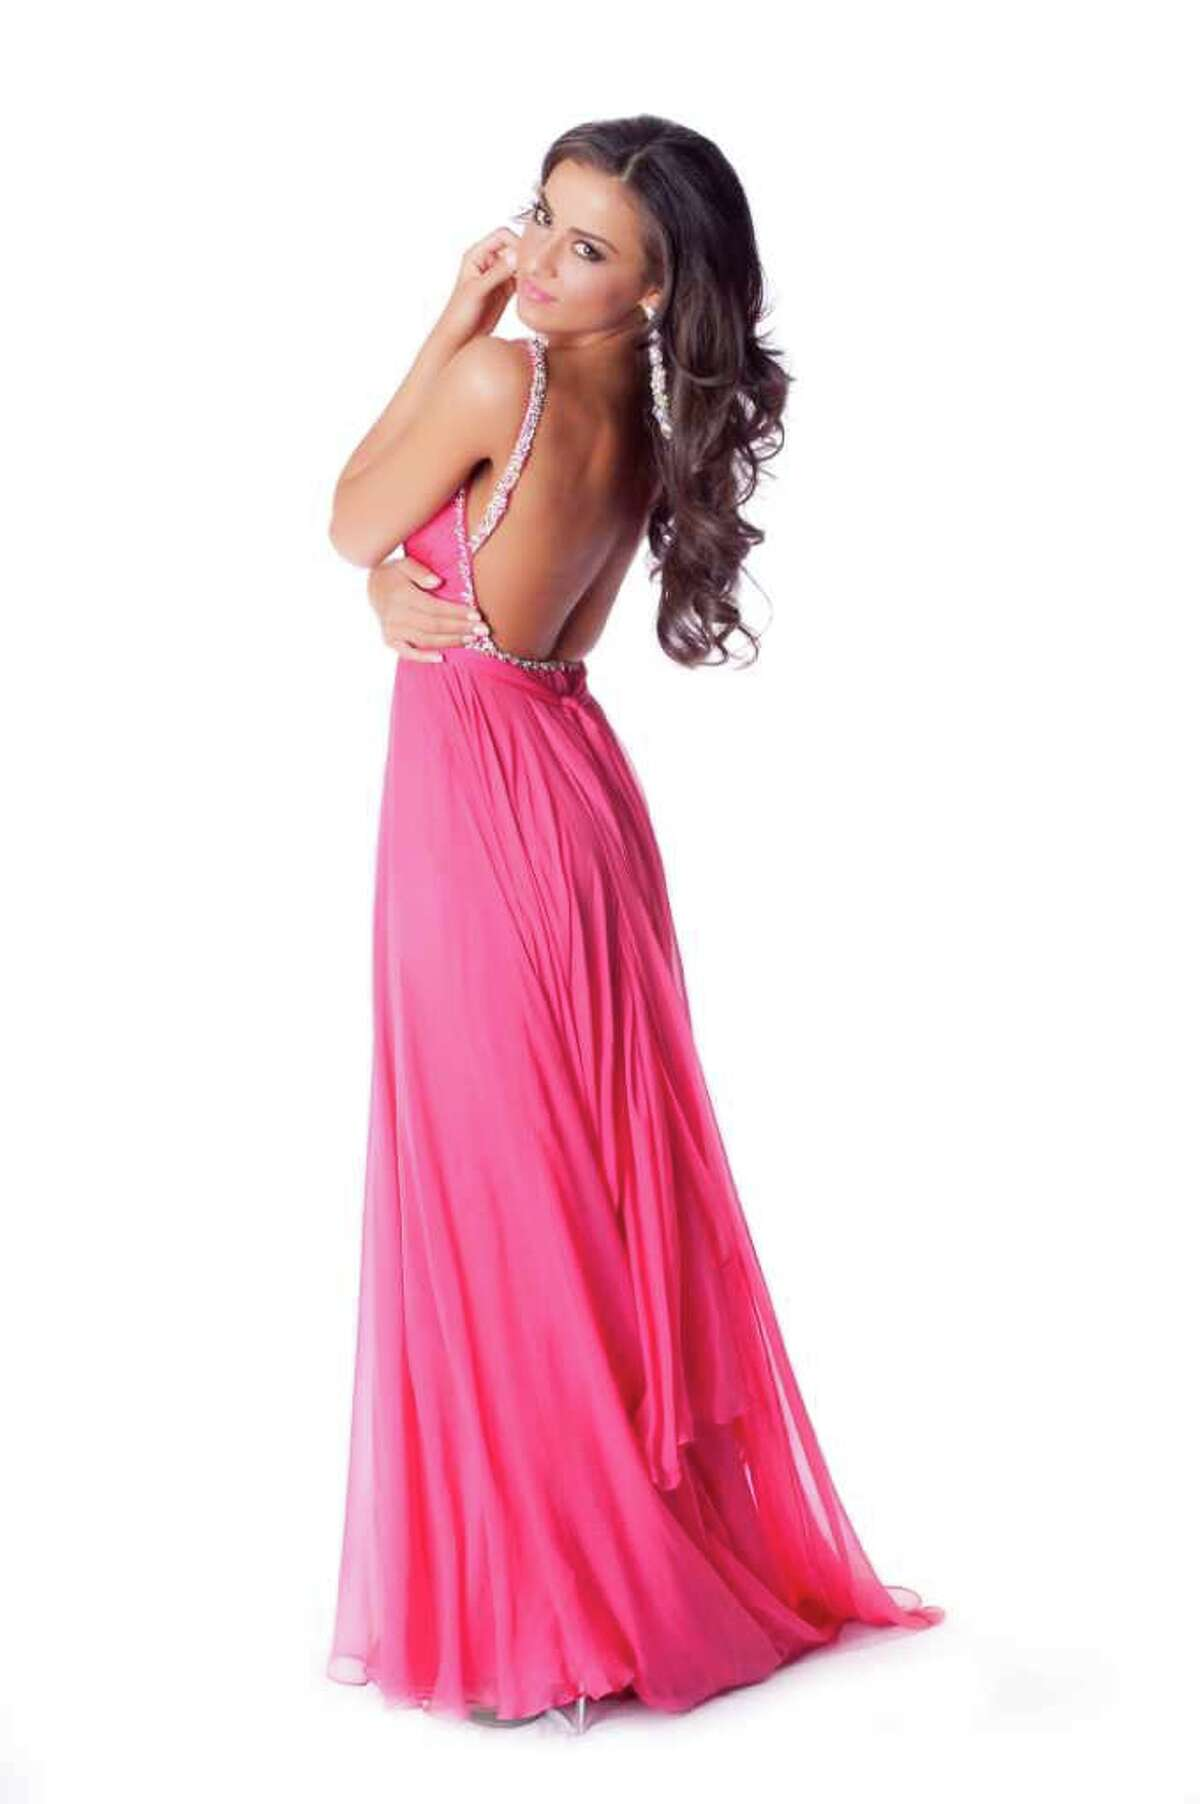 Kayyalaynen, 21, lives in Camas, east of Vancouver. She represented Orchards in the state pageant.